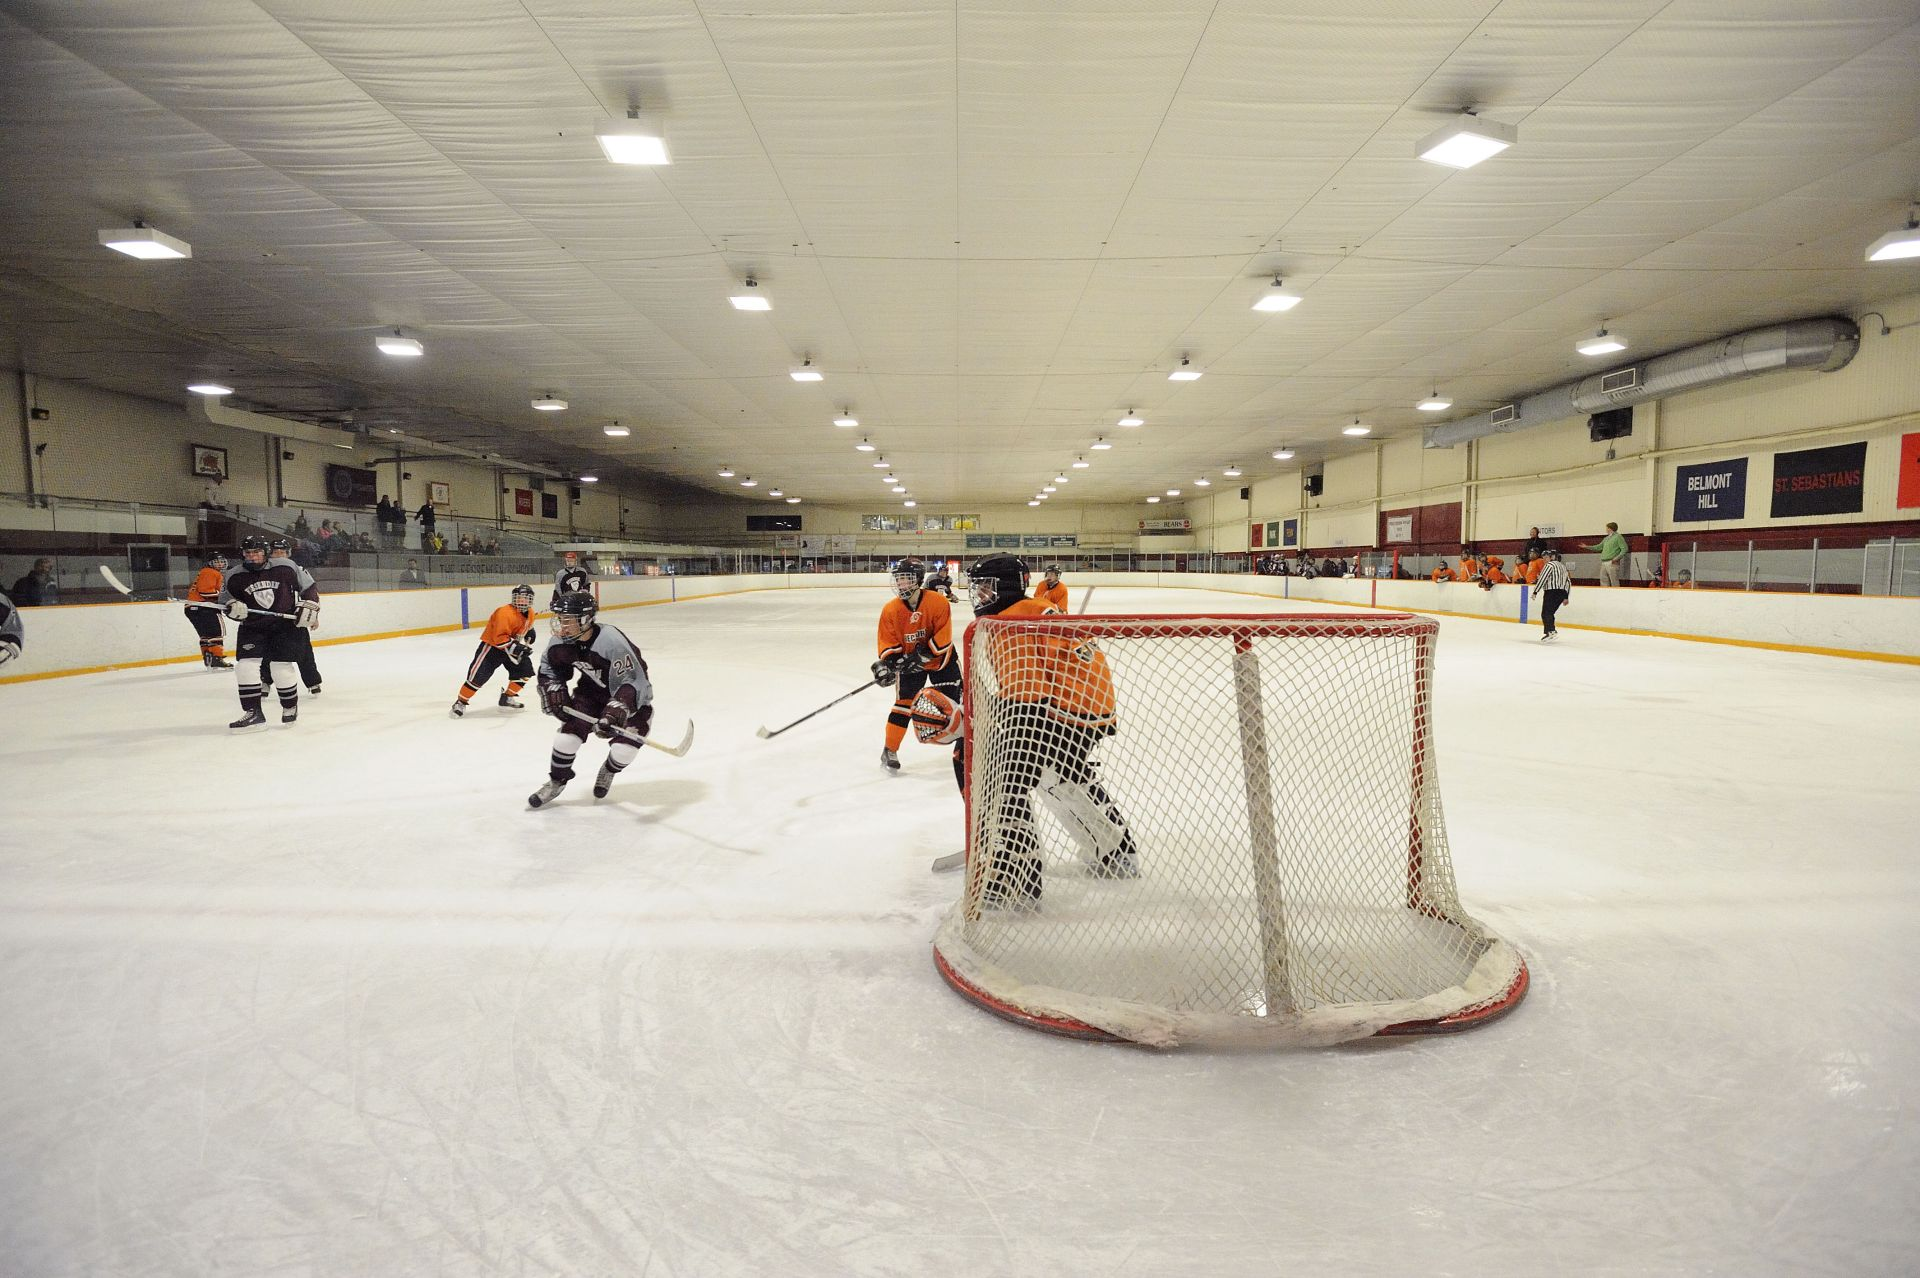 The Fessenden Ice Rink: Fessenden has an indoor ice rink and and skate shop.